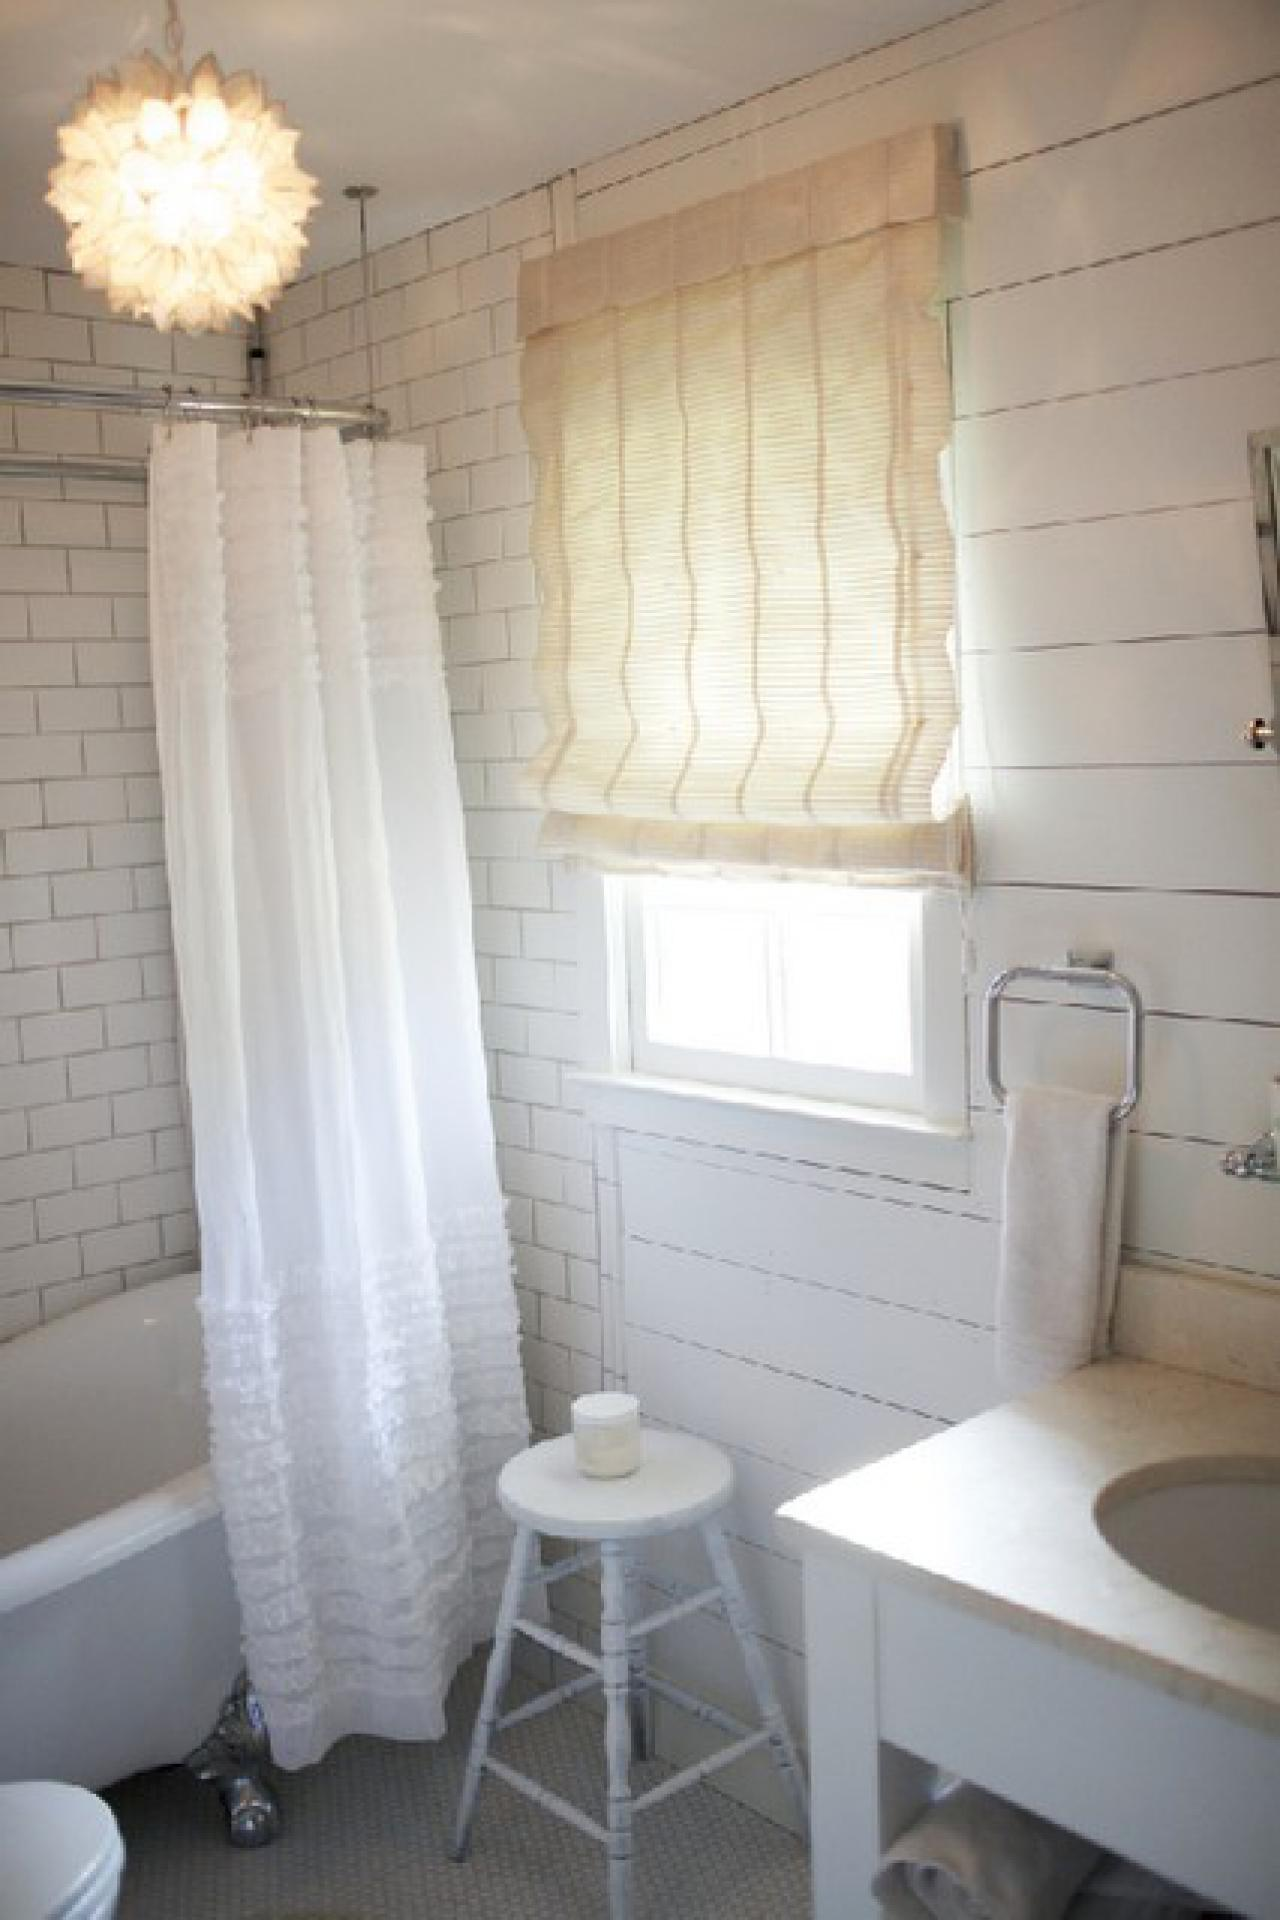 DP_Darnell-Cottage-Master-Bathroom-3_s3x4.jpg.rend.hgtvcom.1280.1920